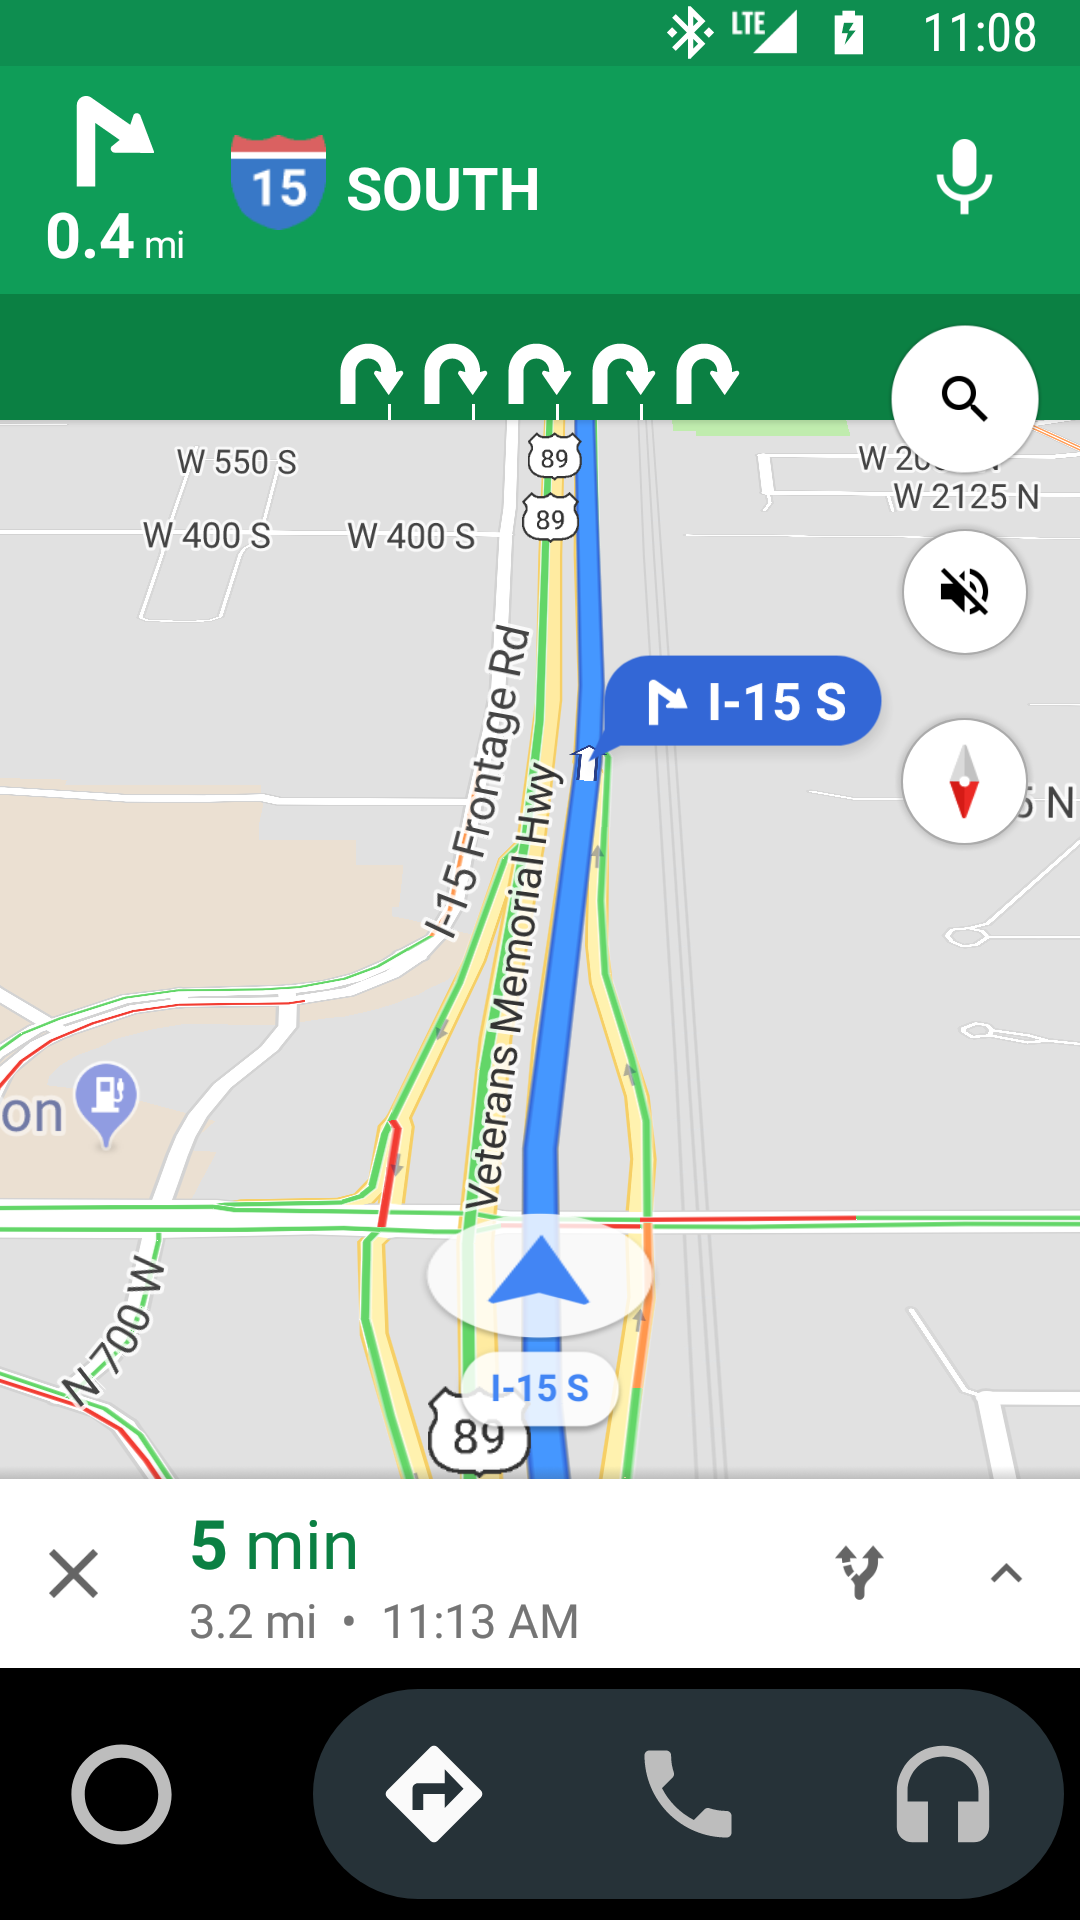 Why does Maps Navigation tell me to U-turn on the freeway? I